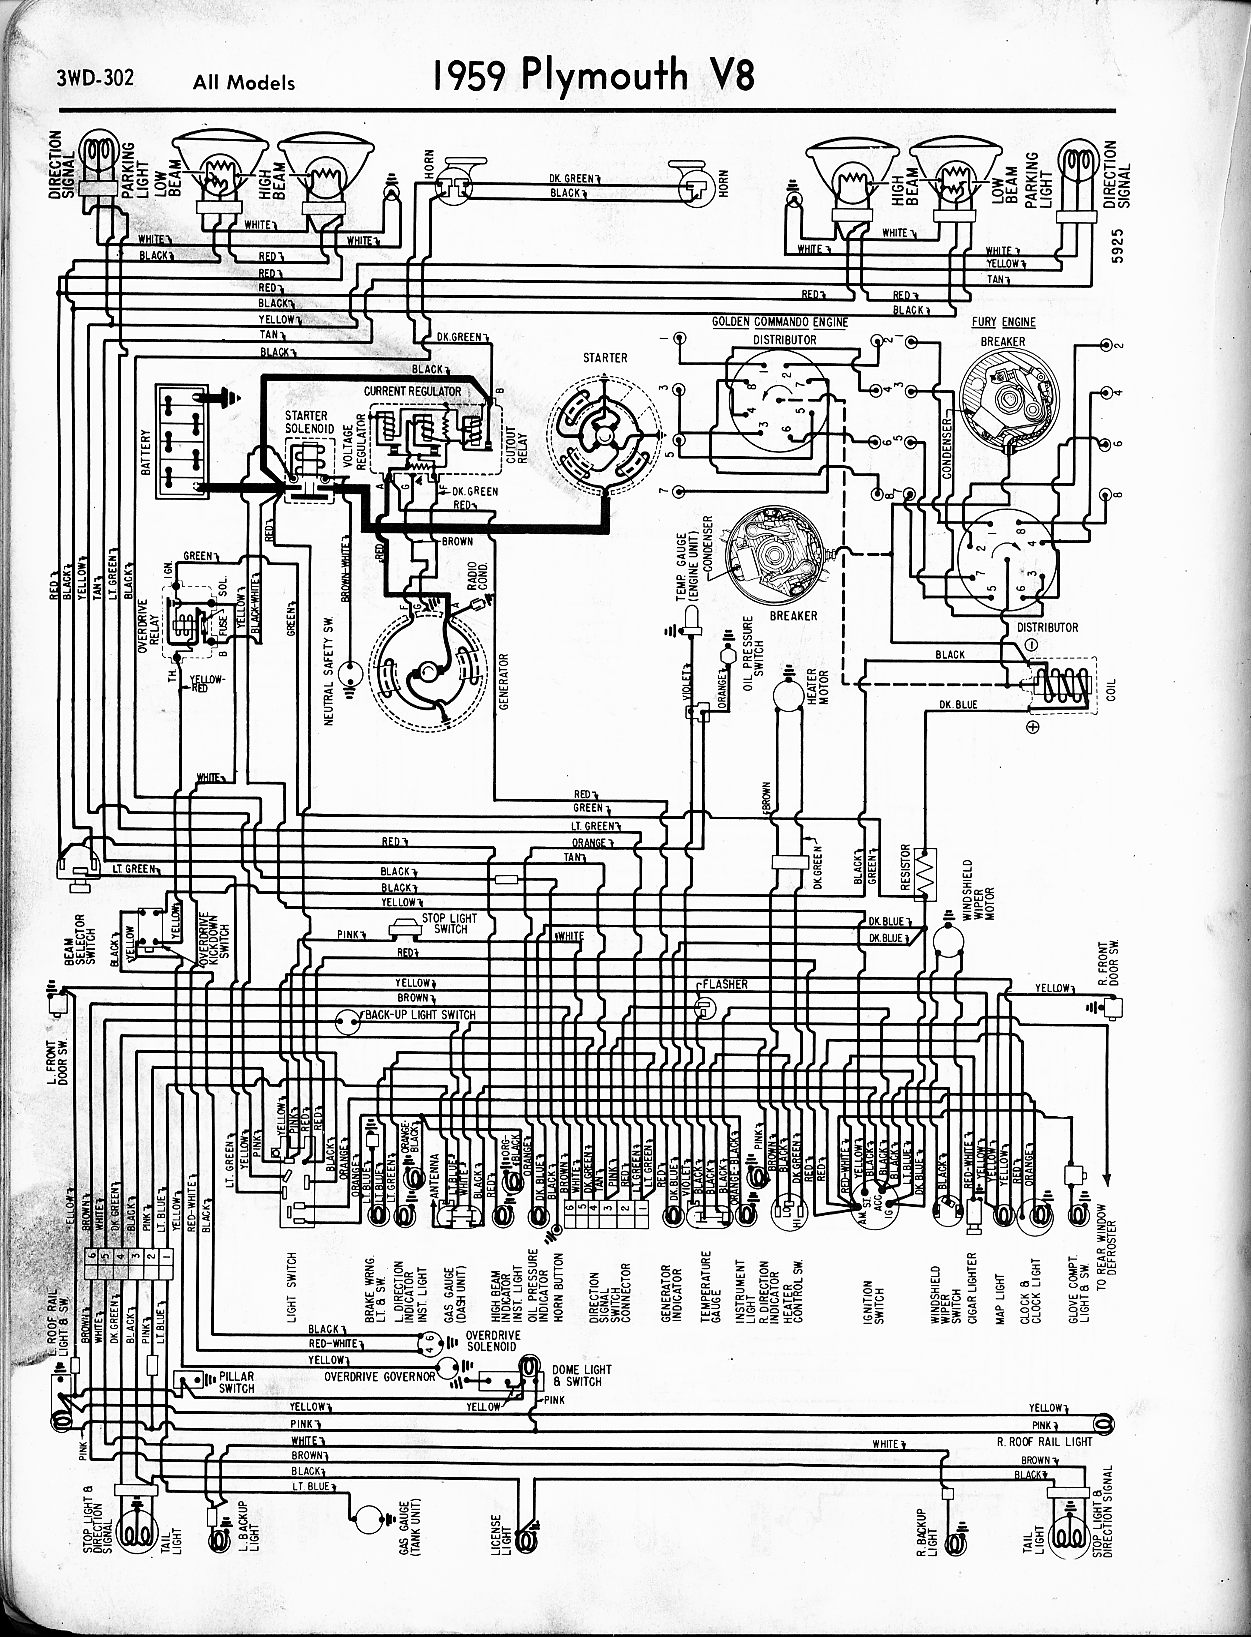 1956 1965 Plymouth Wiring The Old Car Manual Project Ford Dome Light Diagram